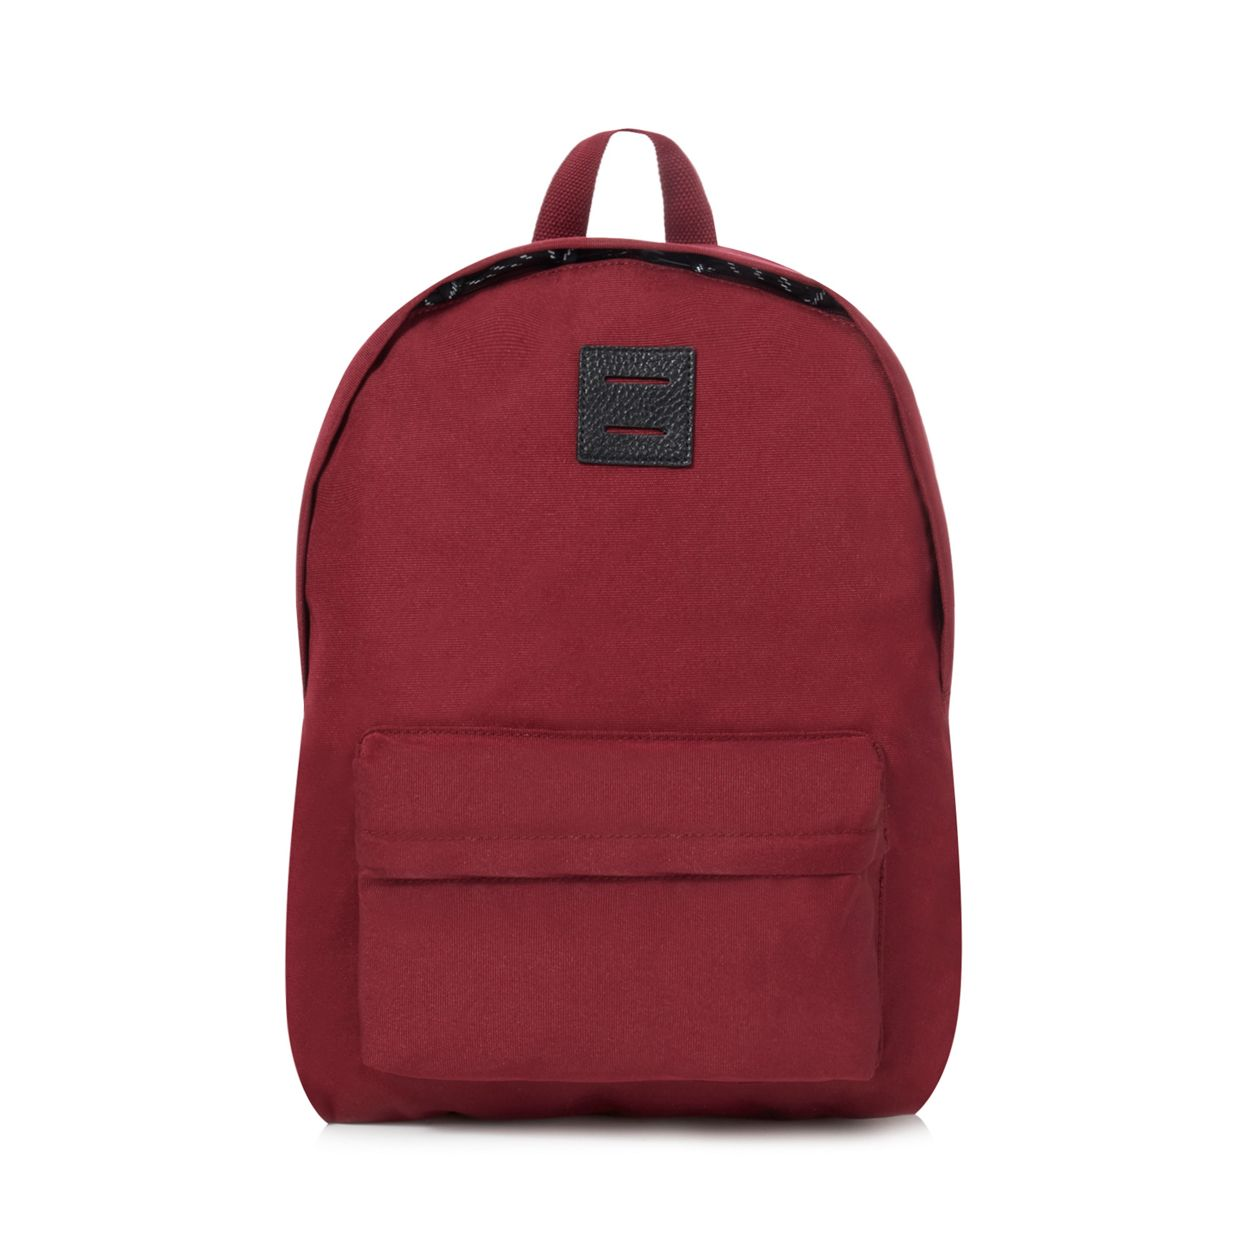 Red Herring Wine Dark red backpack